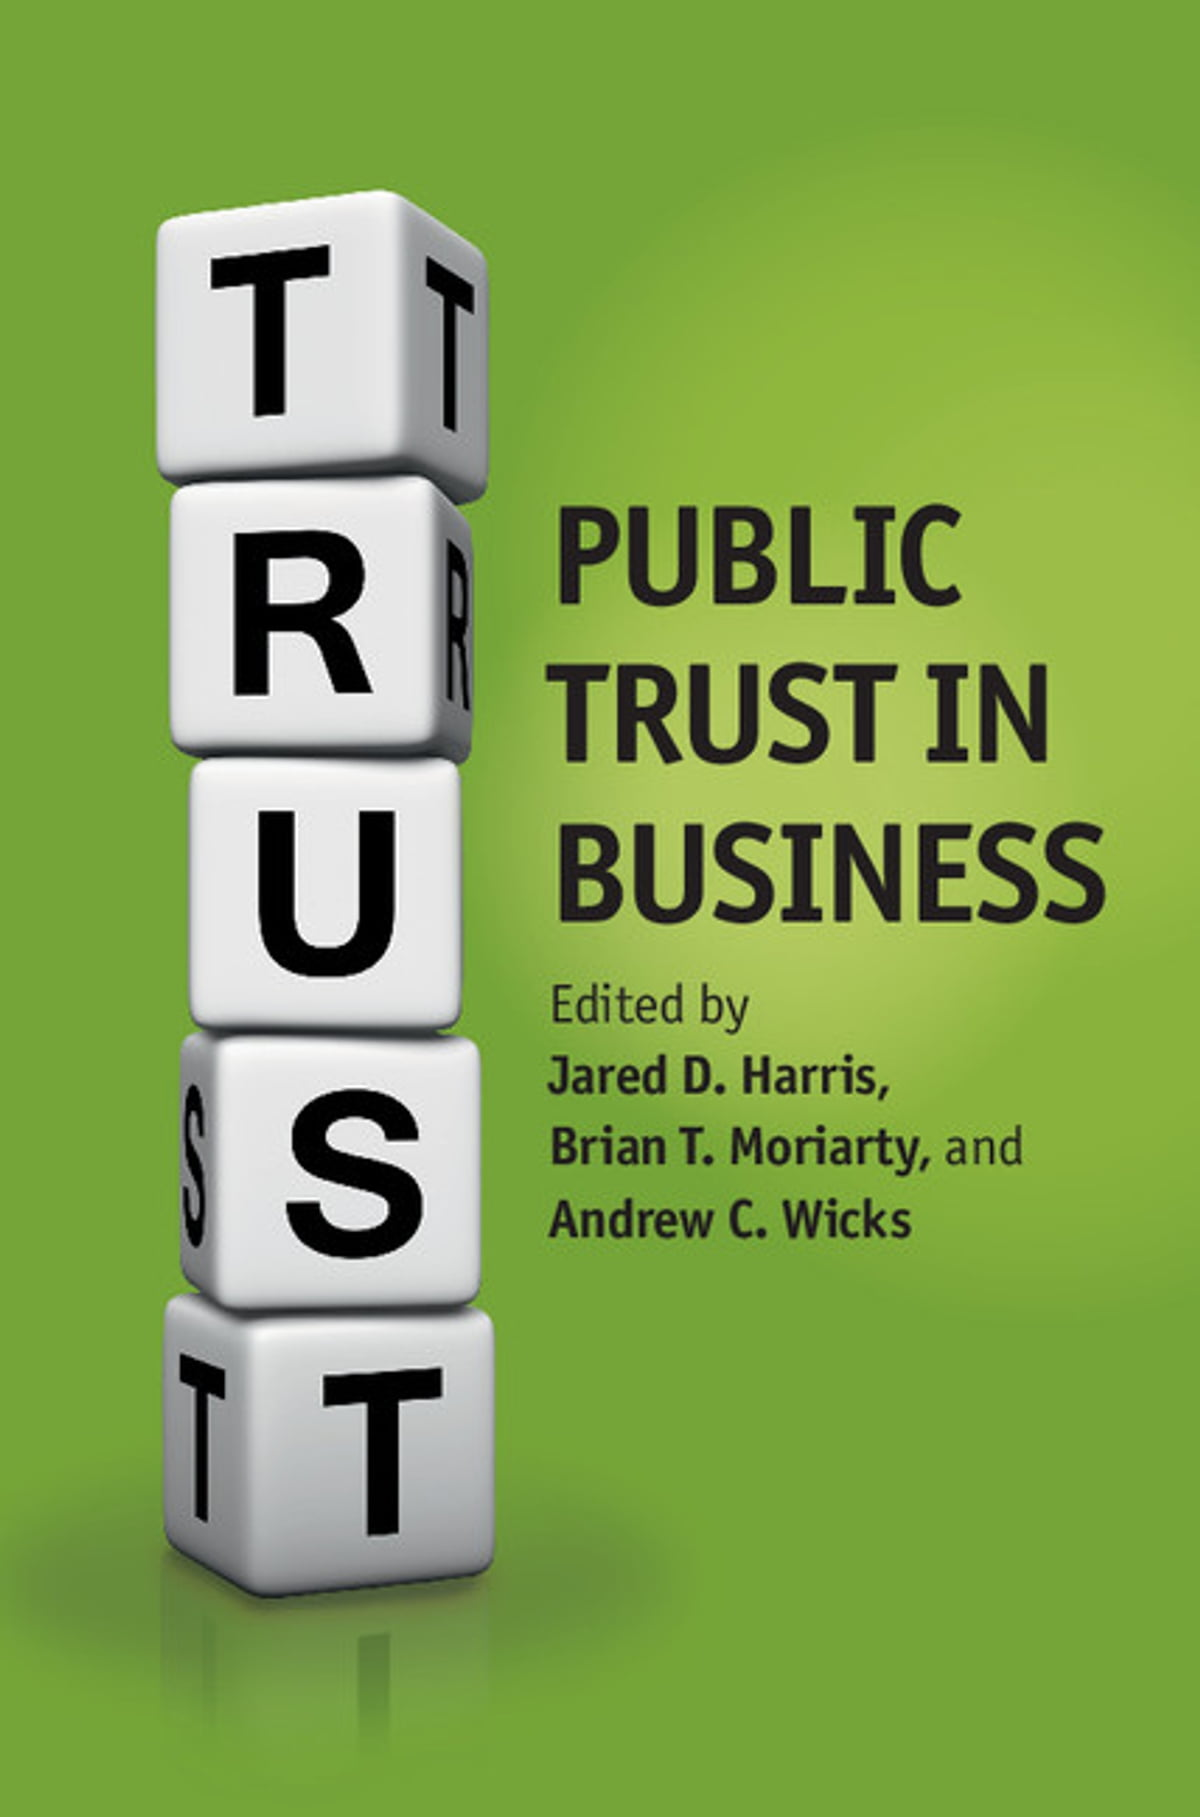 trust in business is a means The relative absence of trust in business has implications for thinking through how successful and resource-intensive the efforts of management will be in resolving contracting issues with moriarty is an authority on public trust in business, communicating with stakeholders and business ethics.